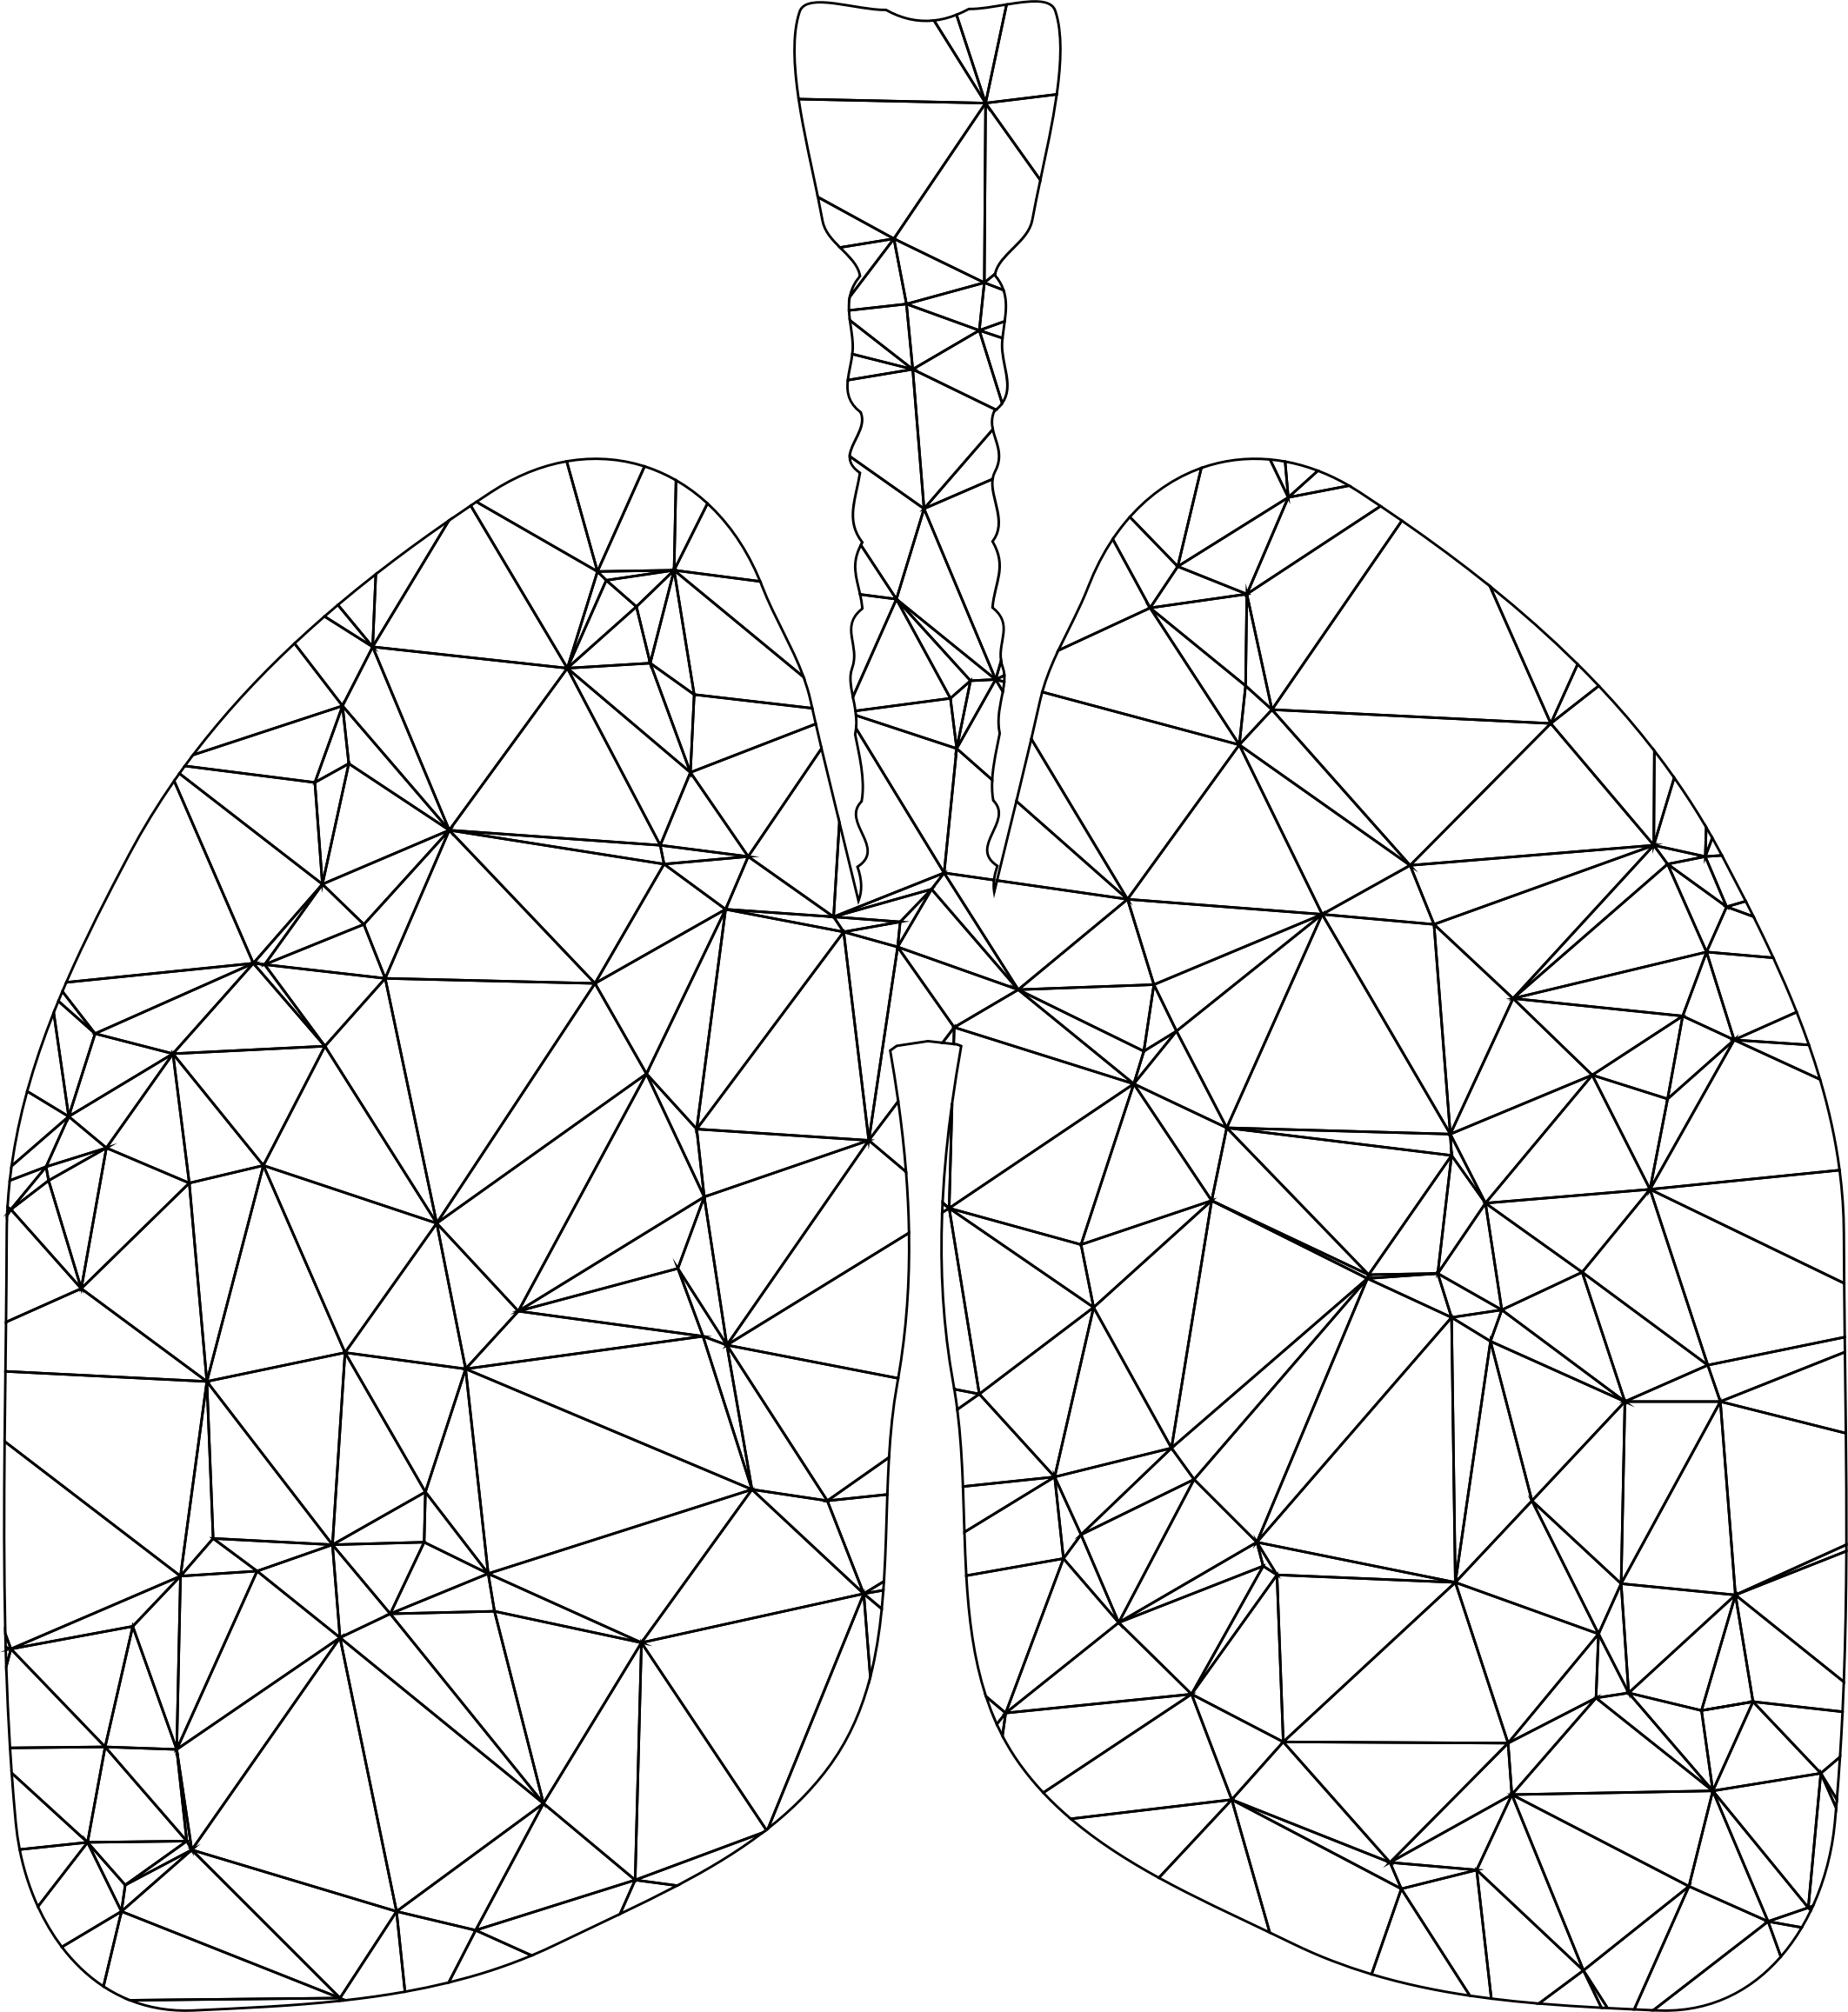 Lungs Clipart Transparent Background Lungs Transparent